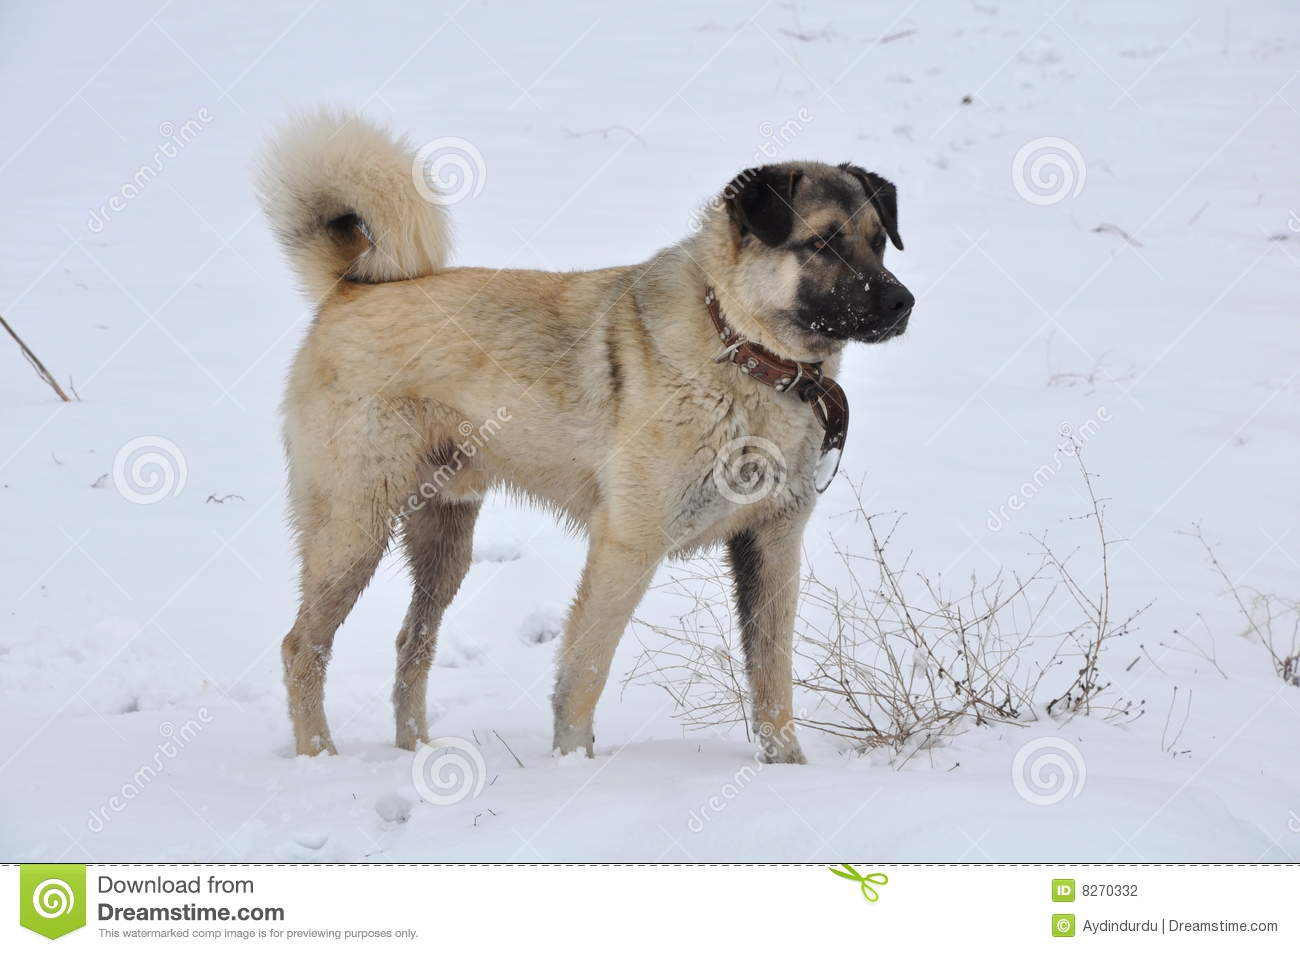 Kangal Dog clipart #16, Download drawings